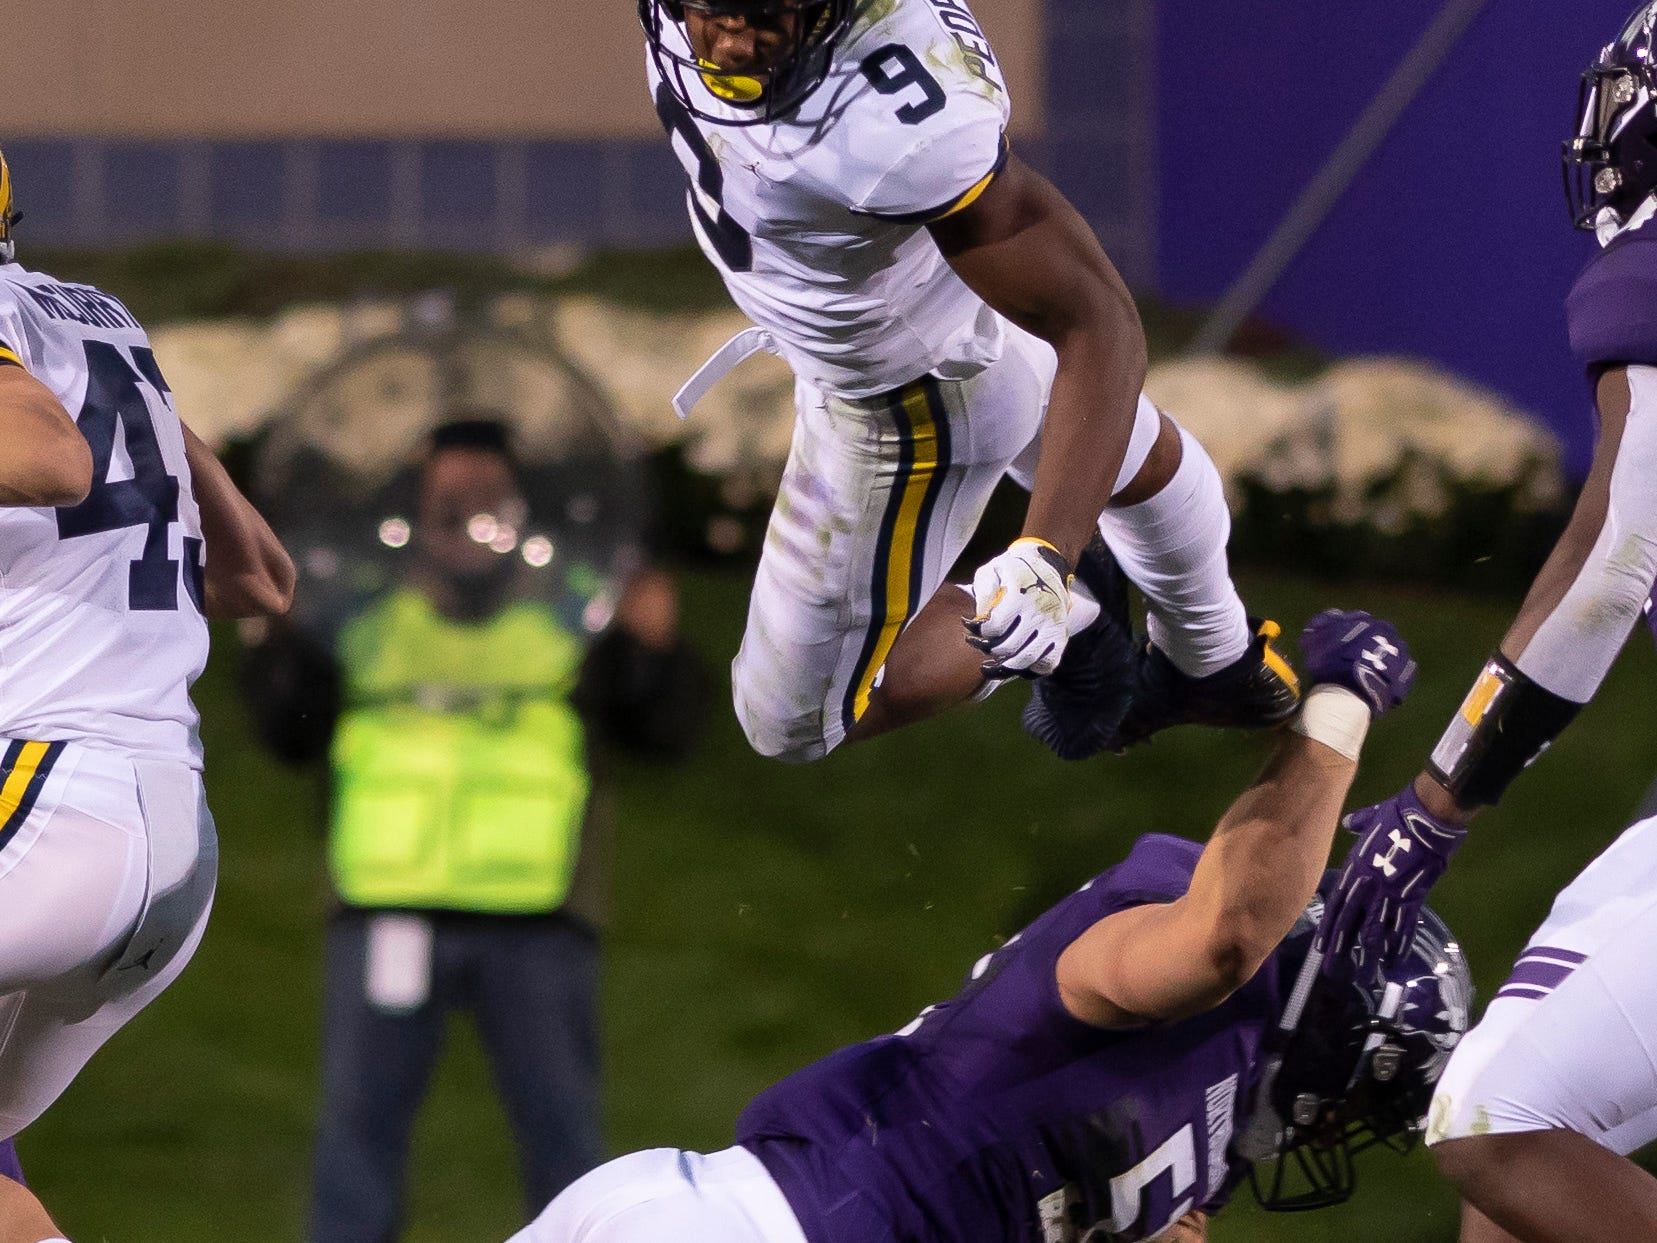 Michigan wide receiver Donovan Peoples-Jones (Cass Tech) flies over Northwestern linebacker Blake Gallagher while returning a punt in the fourth quarter at Ryan Field, in Evanston, IL., on September 29, 2018. The Wolverines rallied from a 17-0 deficit to beat the Wildcats 20-17 in their closest game of the season..